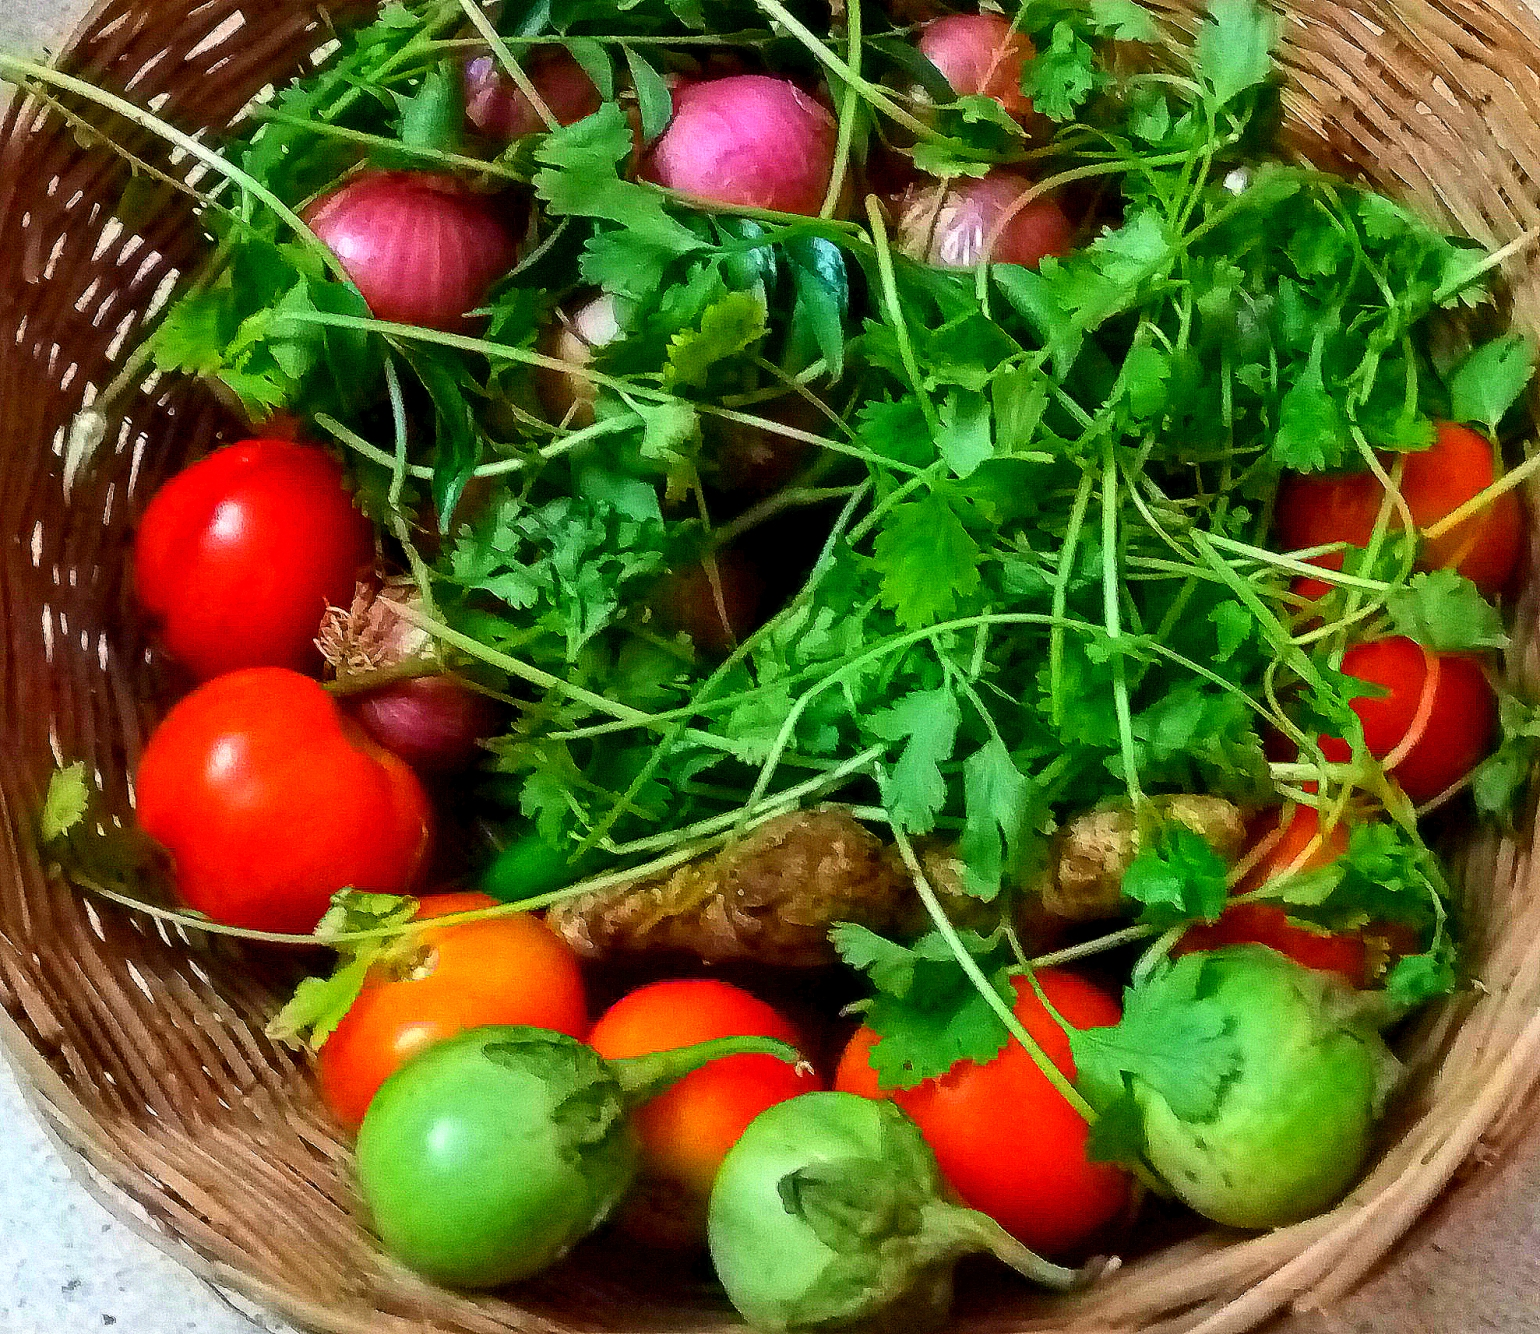 Cook, Eat and Drink - An aerial view of a basket of vegetables